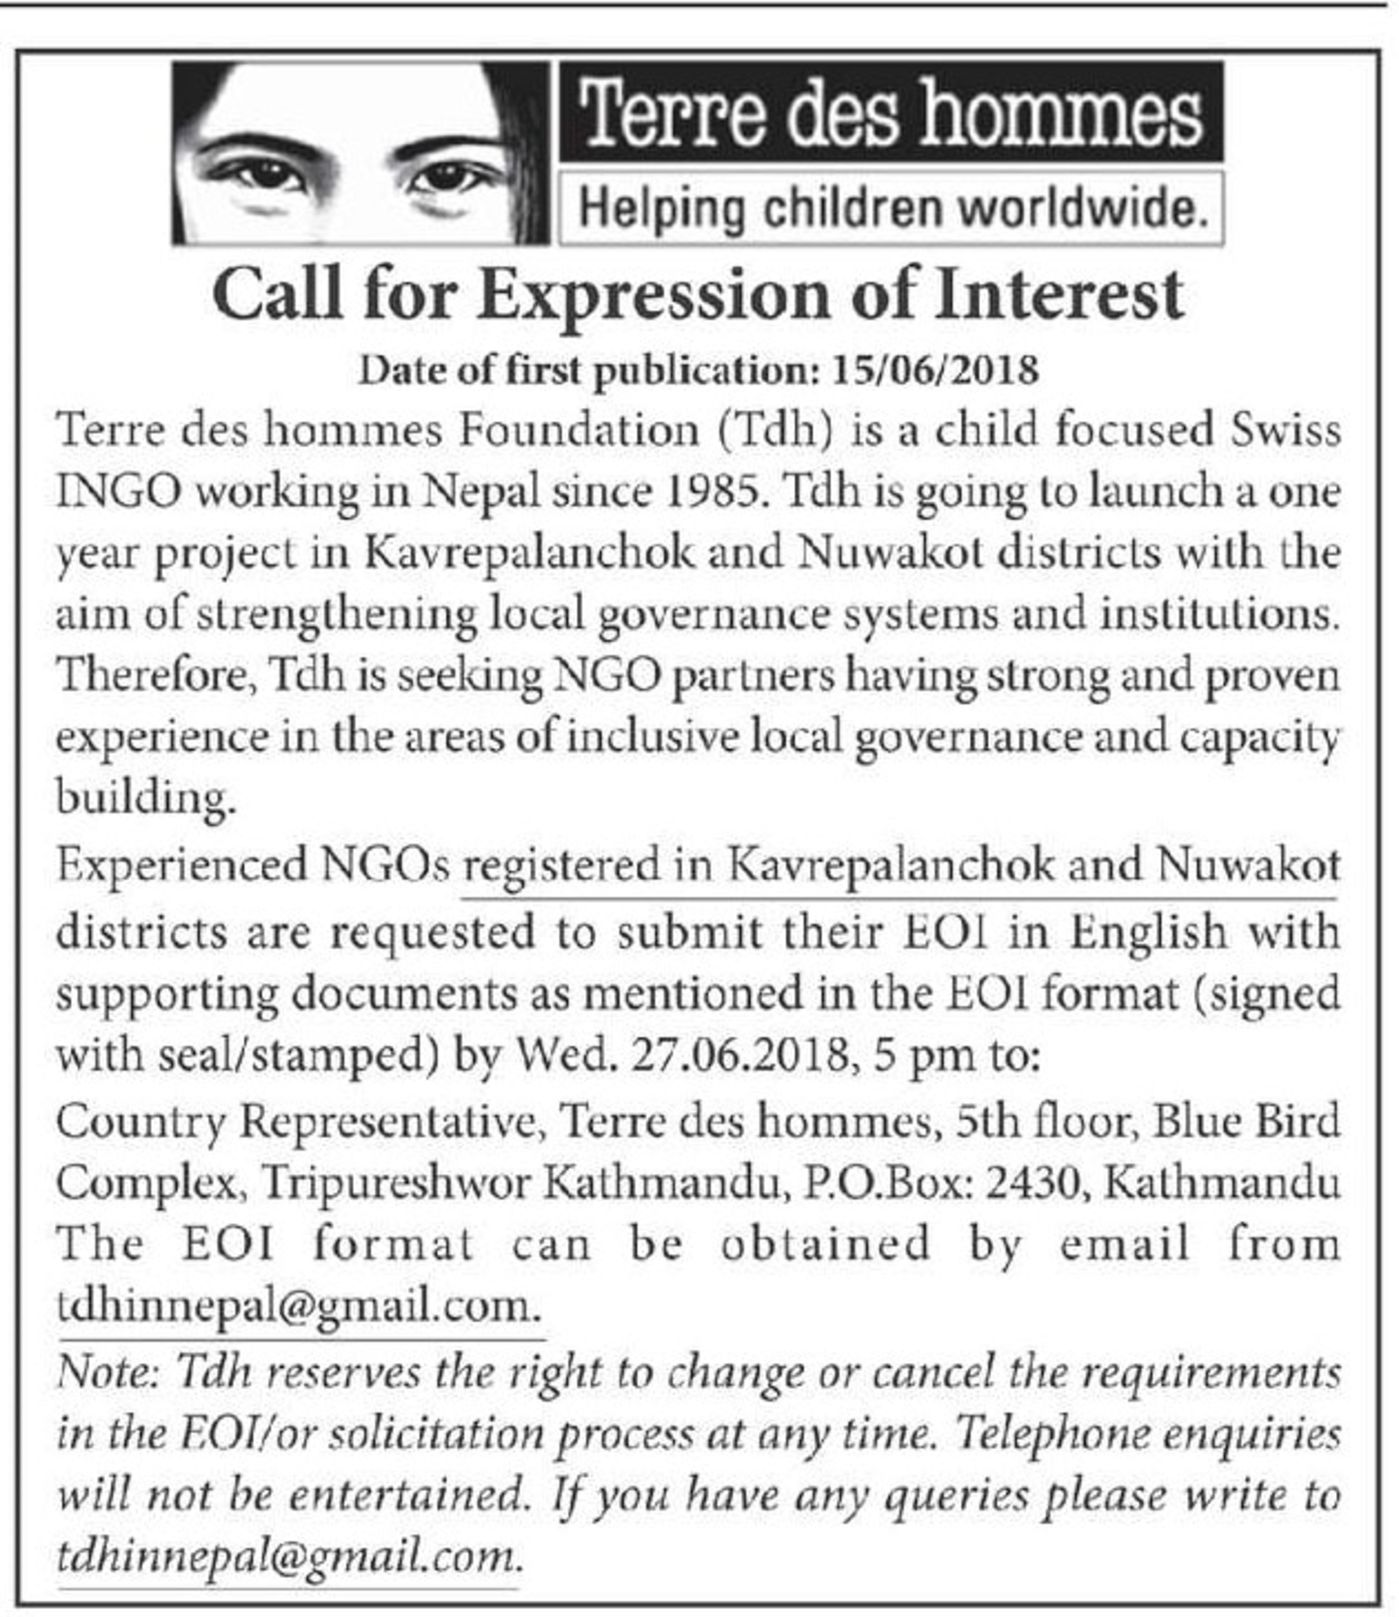 Bids and Tenders Nepal - EOI - NGOs working in the areas of